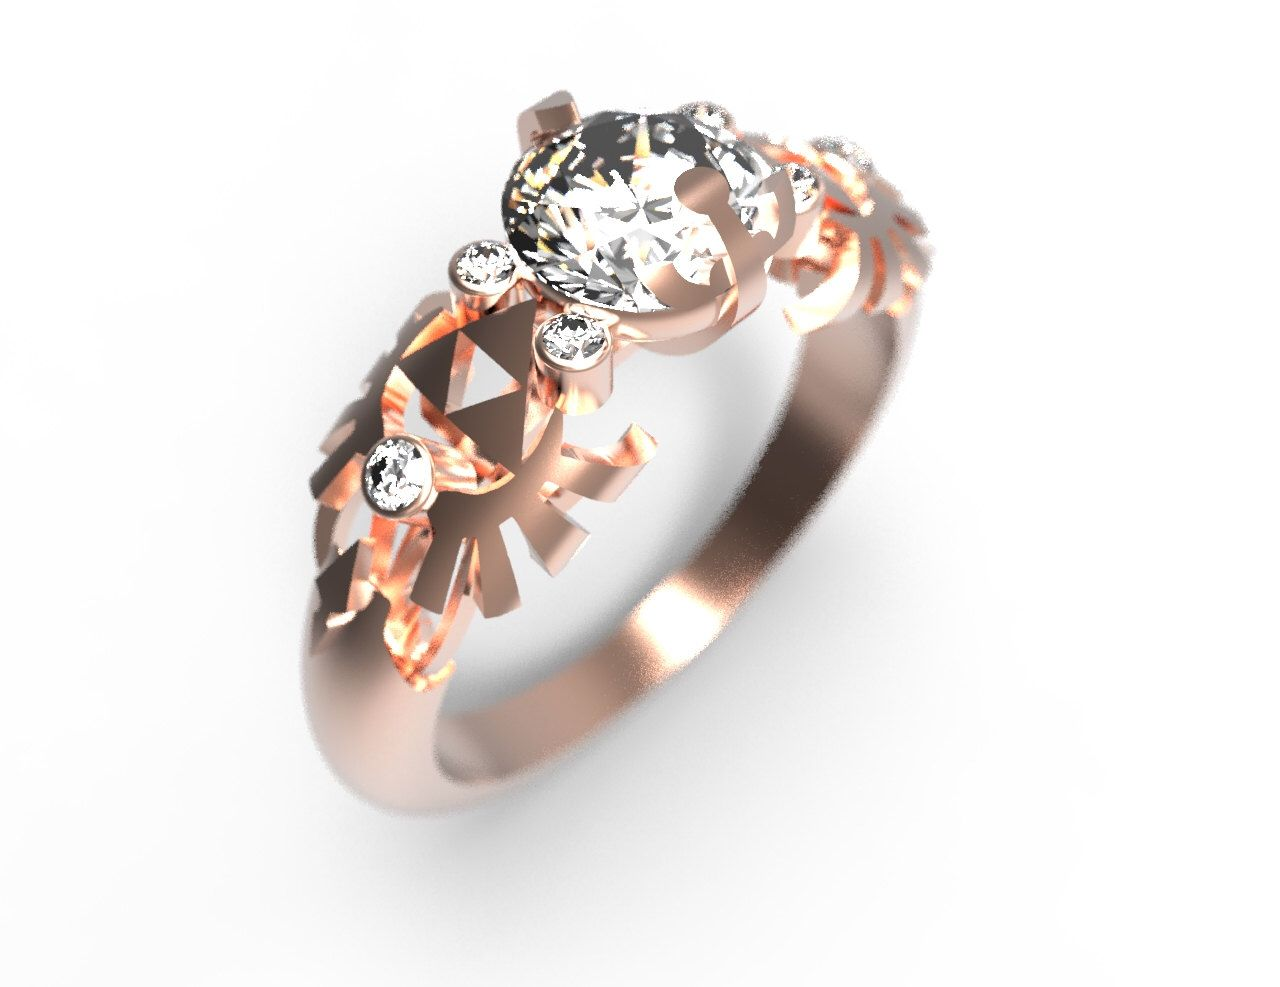 Zelda Engagement Ring Triforce Inspired Rose Gold Engagement Ring Nintendo  Video Game Wedding Ring Geek Engagement